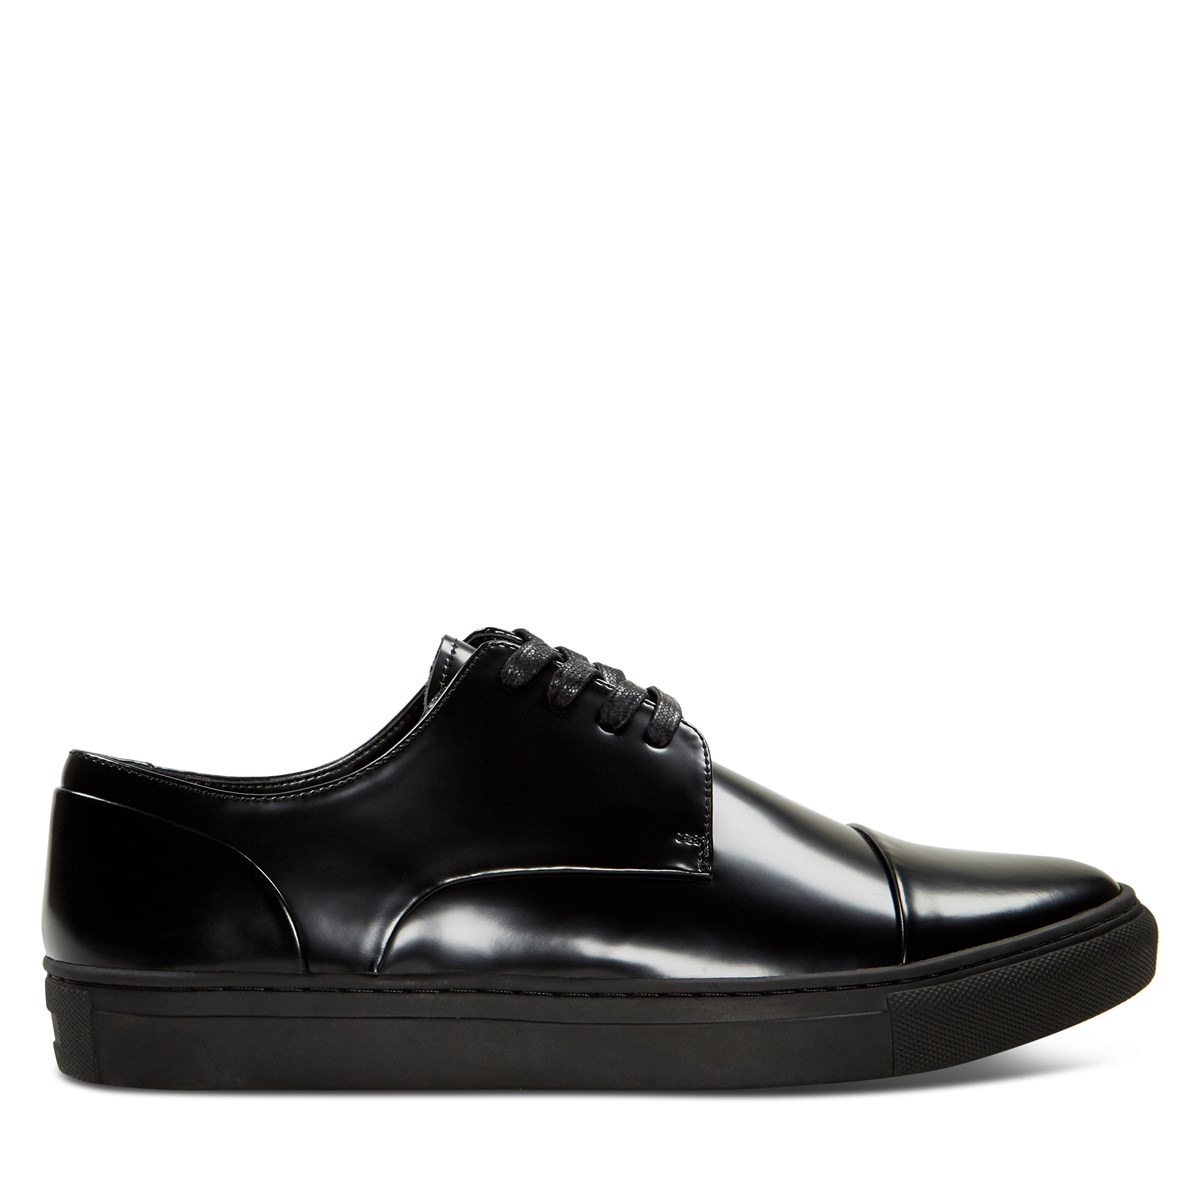 Men's Give a Shout Shoe in Black